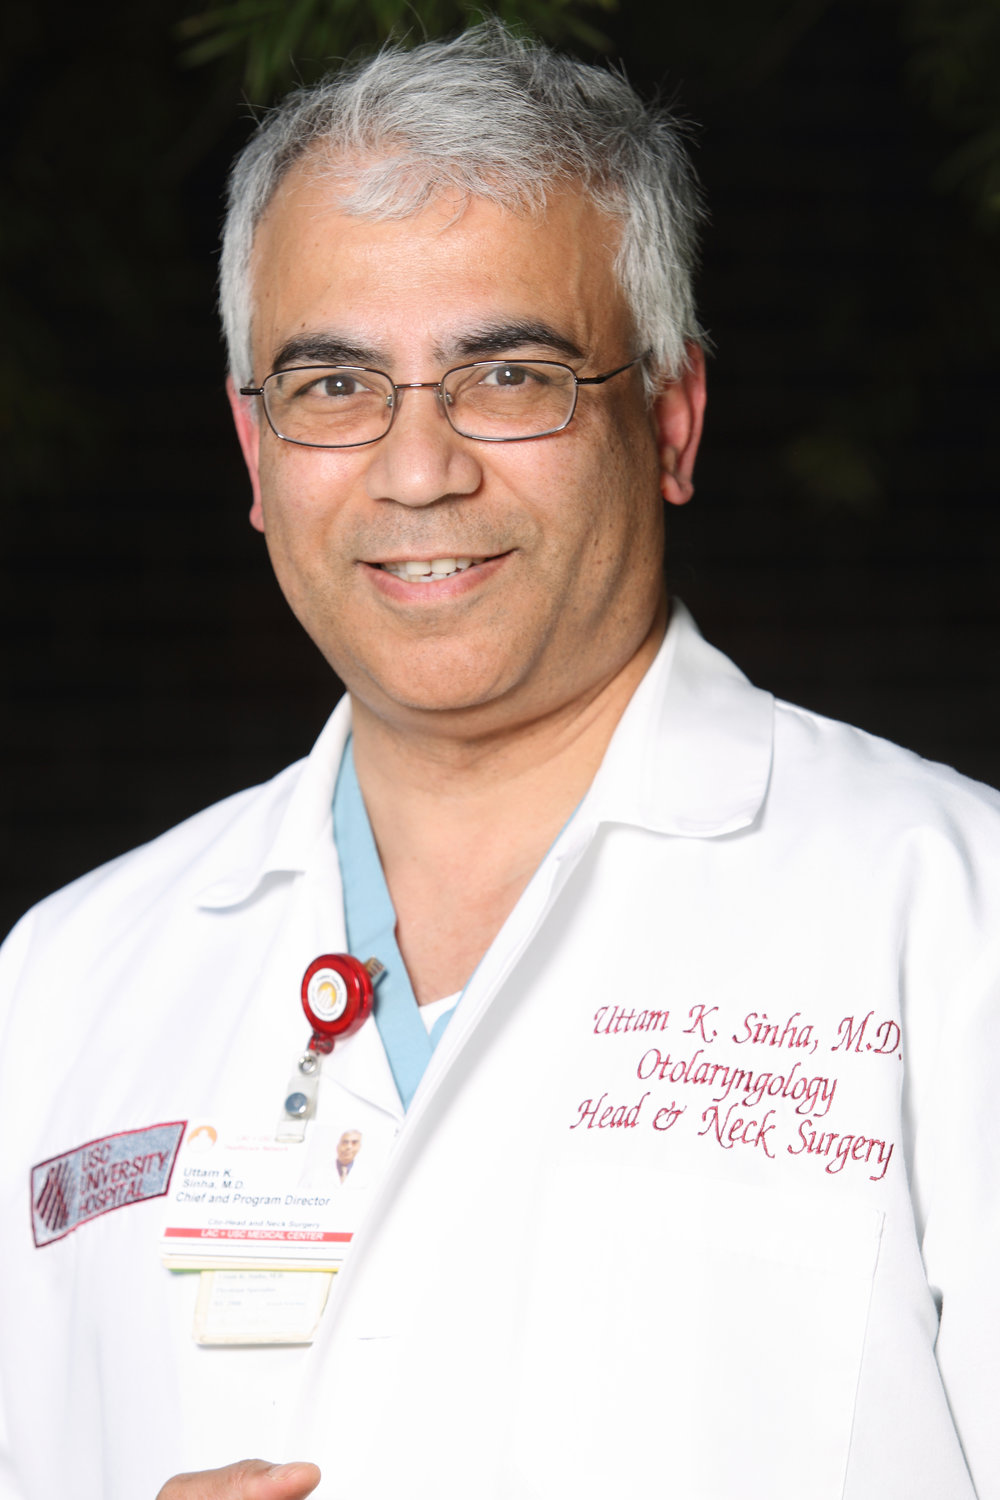 - Uttam K. Sinha, MD, MS, FACSDirector, Head and Neck SurgeryWatt Chair, Head and Neck Cancer ResearchKeck School of Medicine, University of Southern California